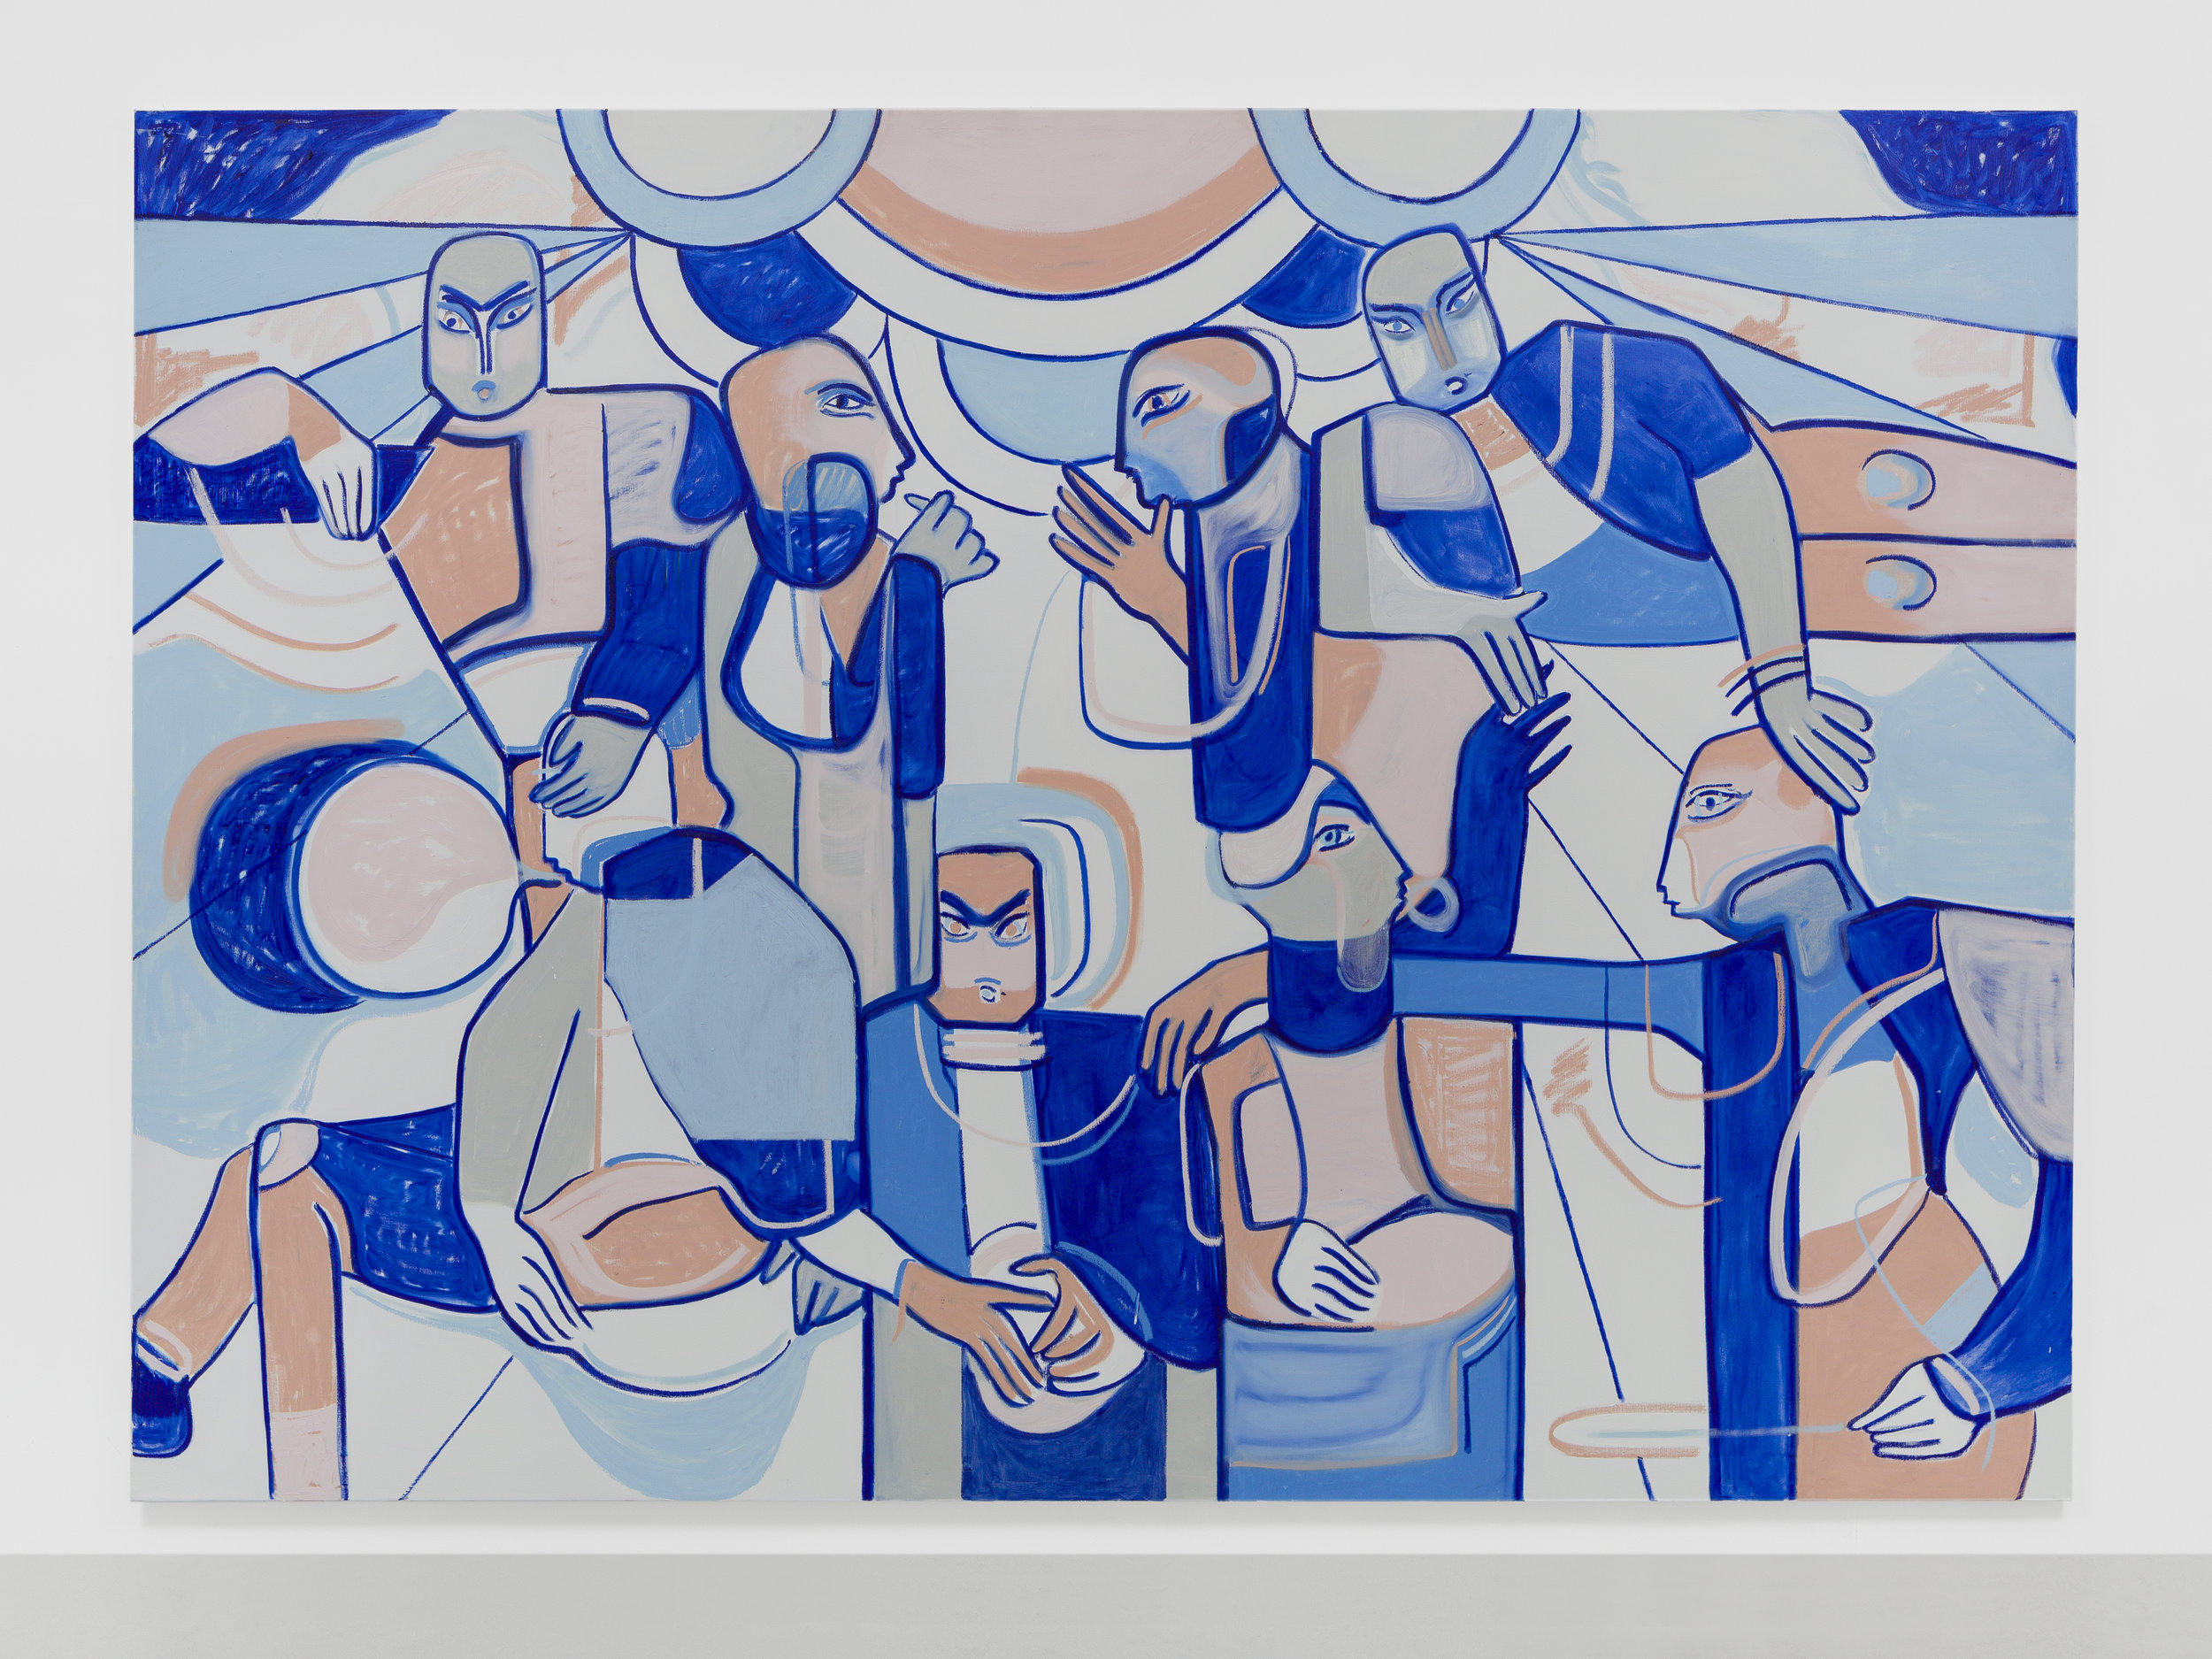 Melike Kara, What it feels like blue, 2019, ol stick and acrylic on canvas, 200 x 280 cm @Ollie Hammick